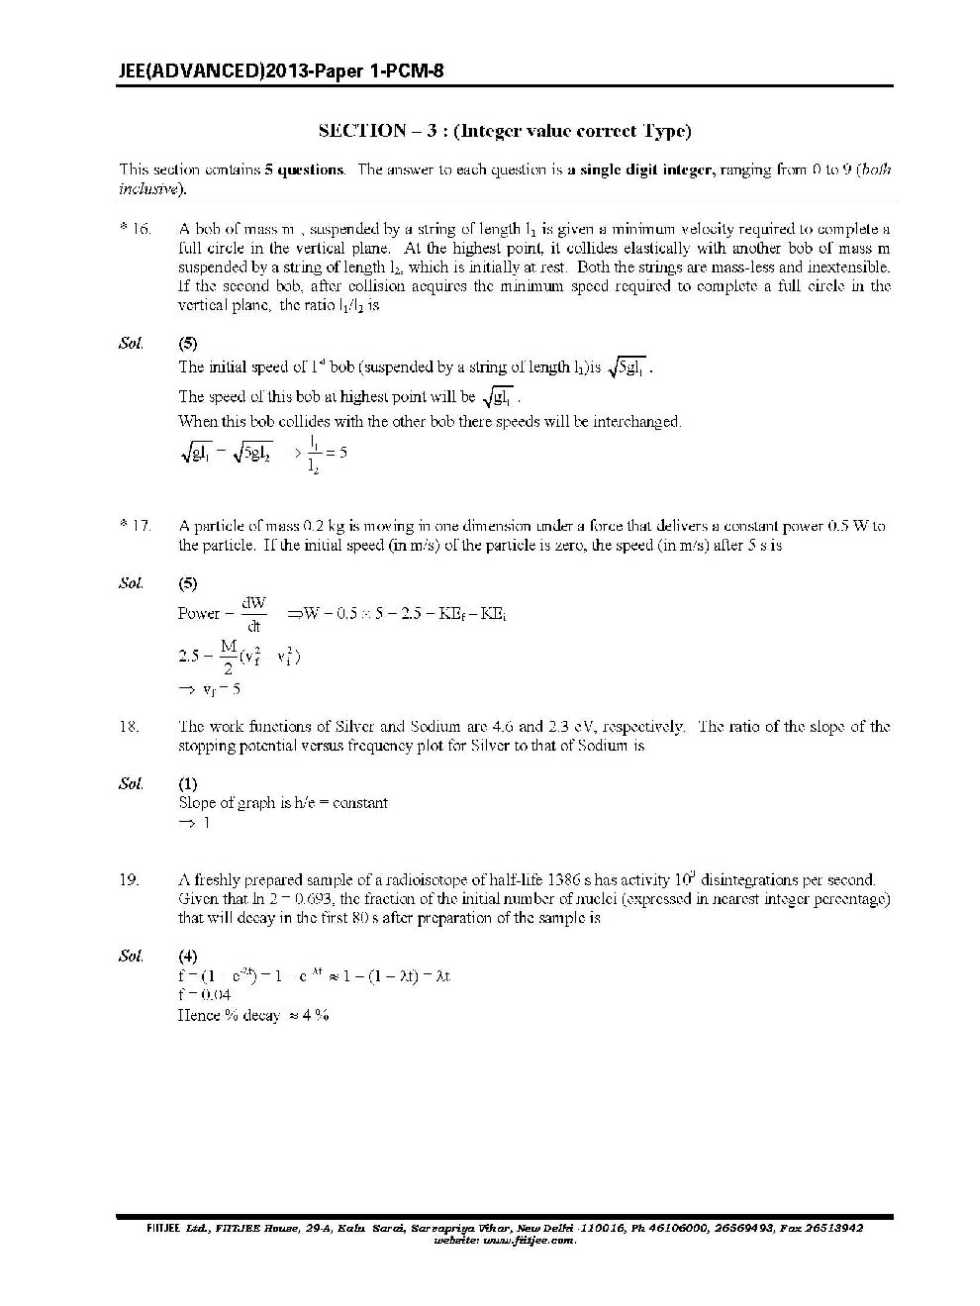 iit jee 2000 question paper with solutions pdf